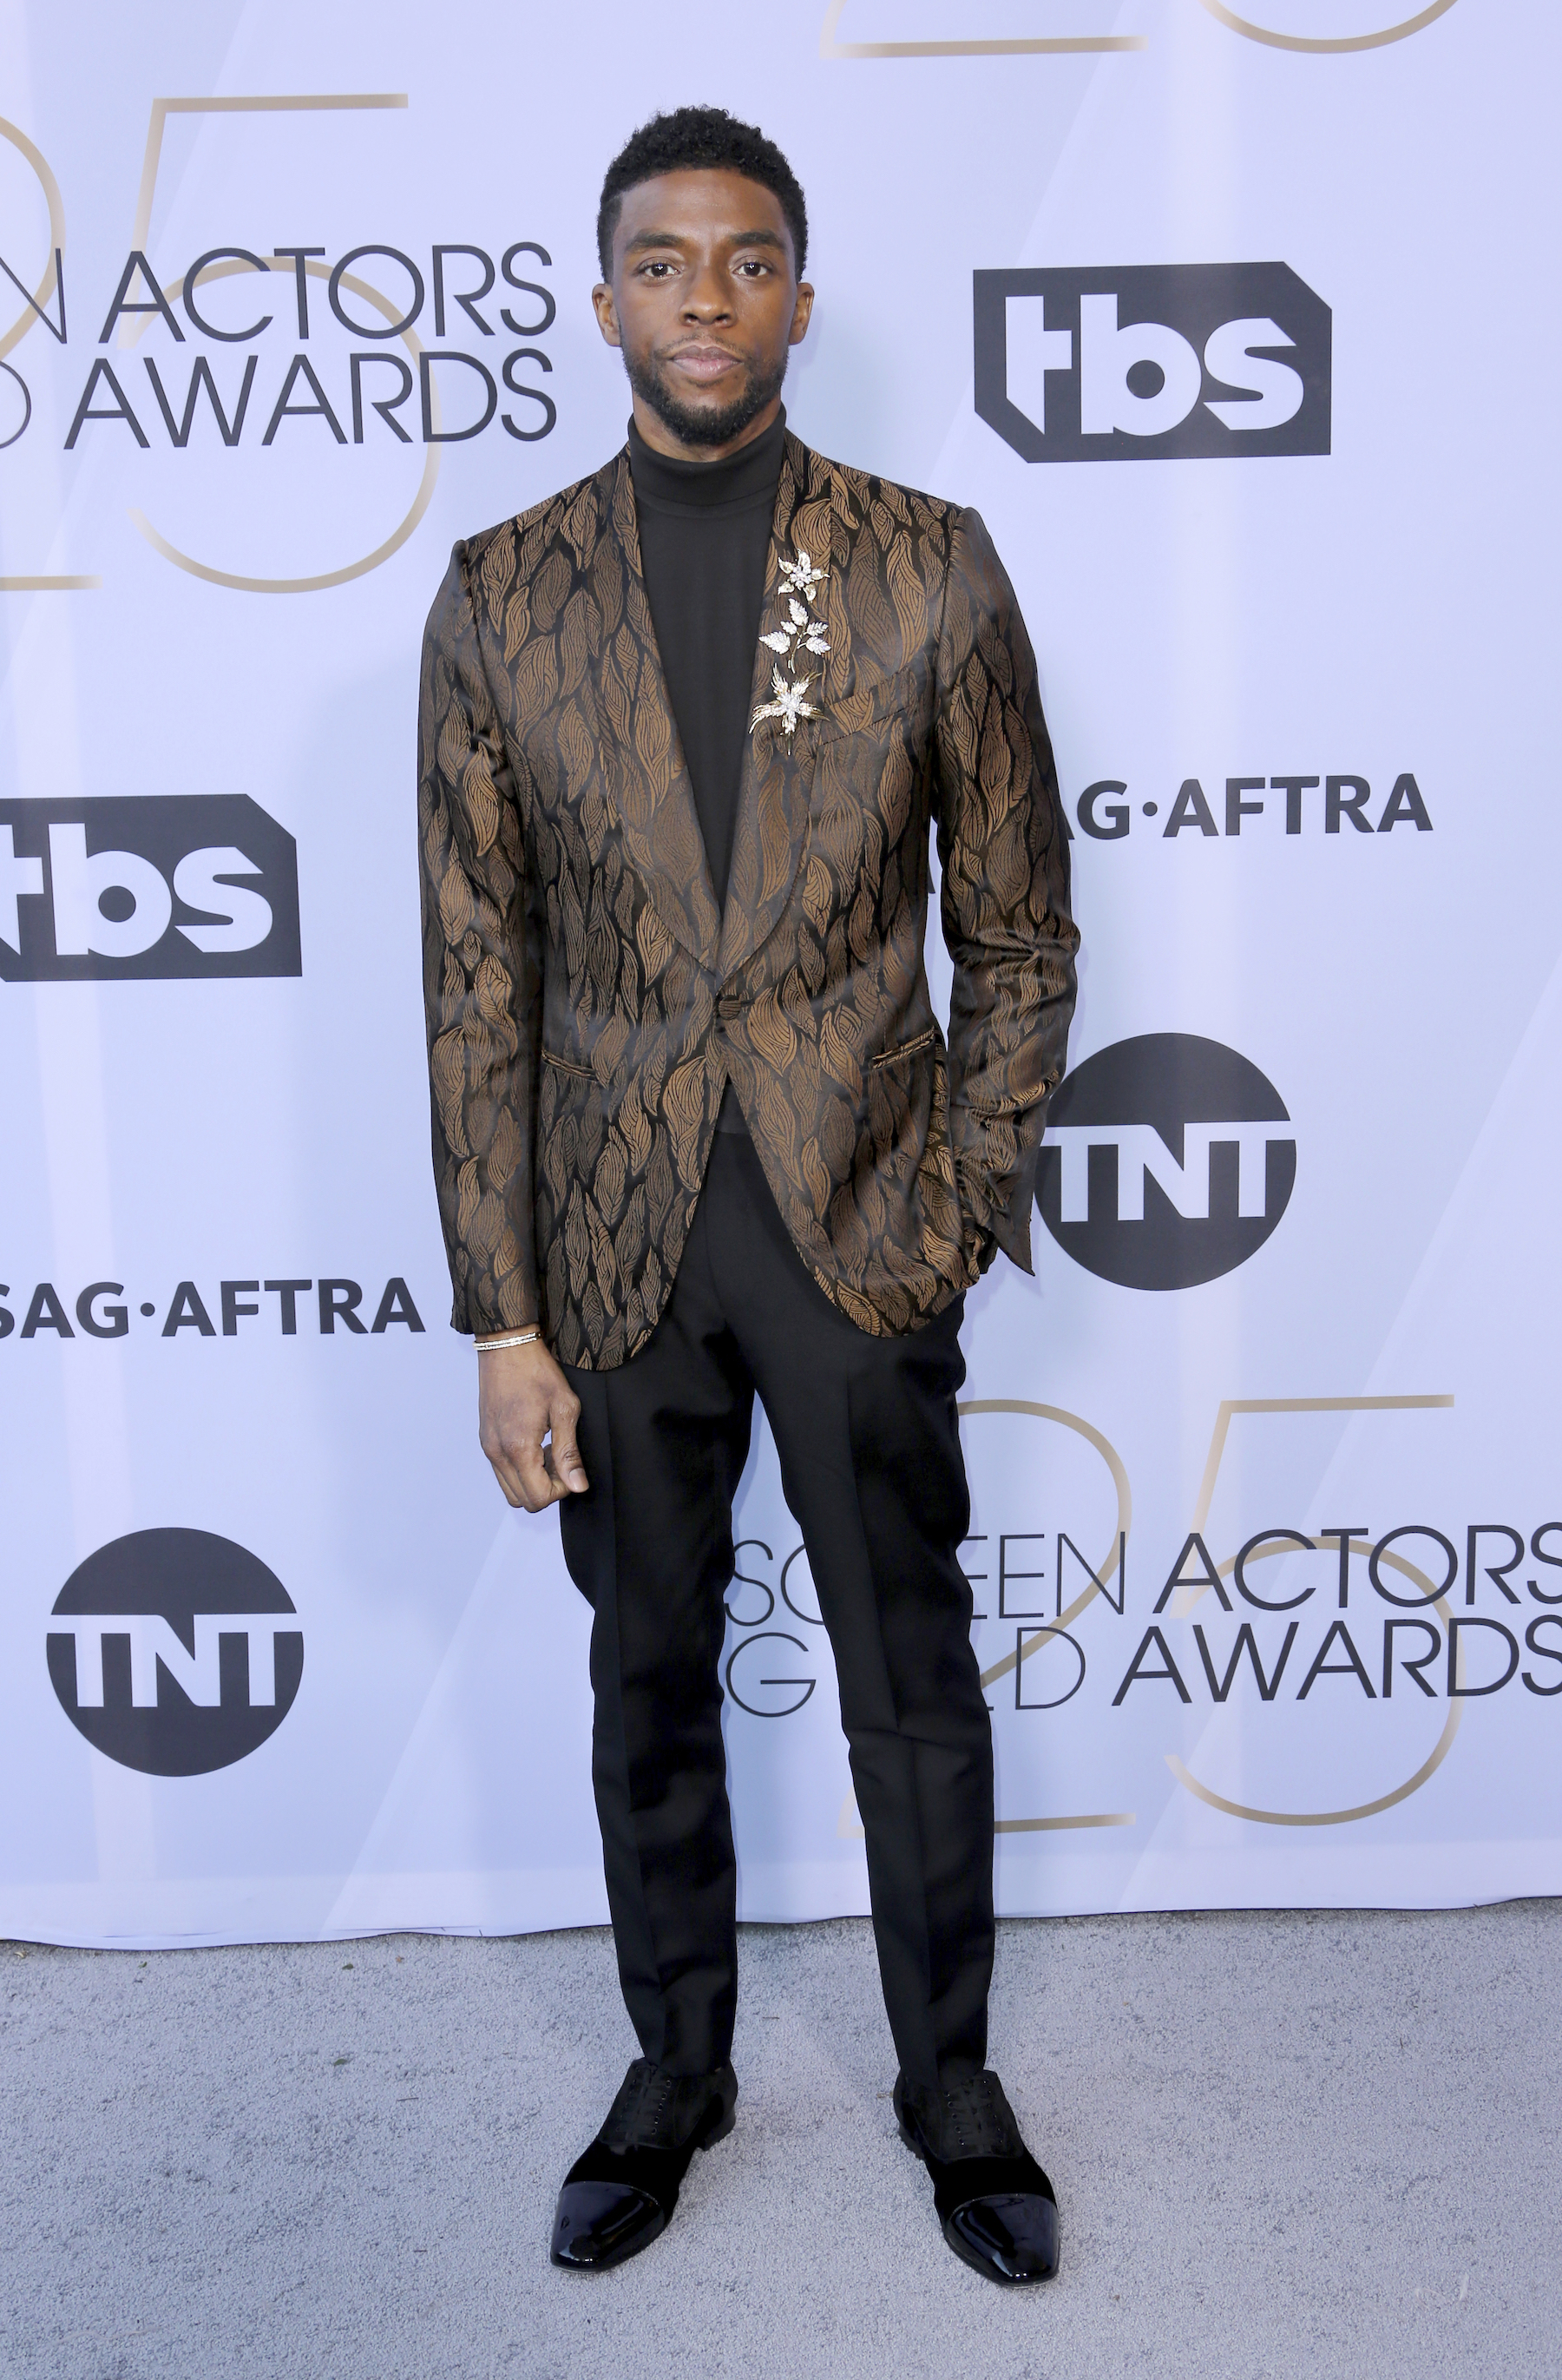 <div class='meta'><div class='origin-logo' data-origin='AP'></div><span class='caption-text' data-credit='Willy Sanjuan/Invision/AP'>Chadwick Boseman arrives at the 25th annual Screen Actors Guild Awards at the Shrine Auditorium & Expo Hall on Sunday, Jan. 27, 2019, in Los Angeles.</span></div>